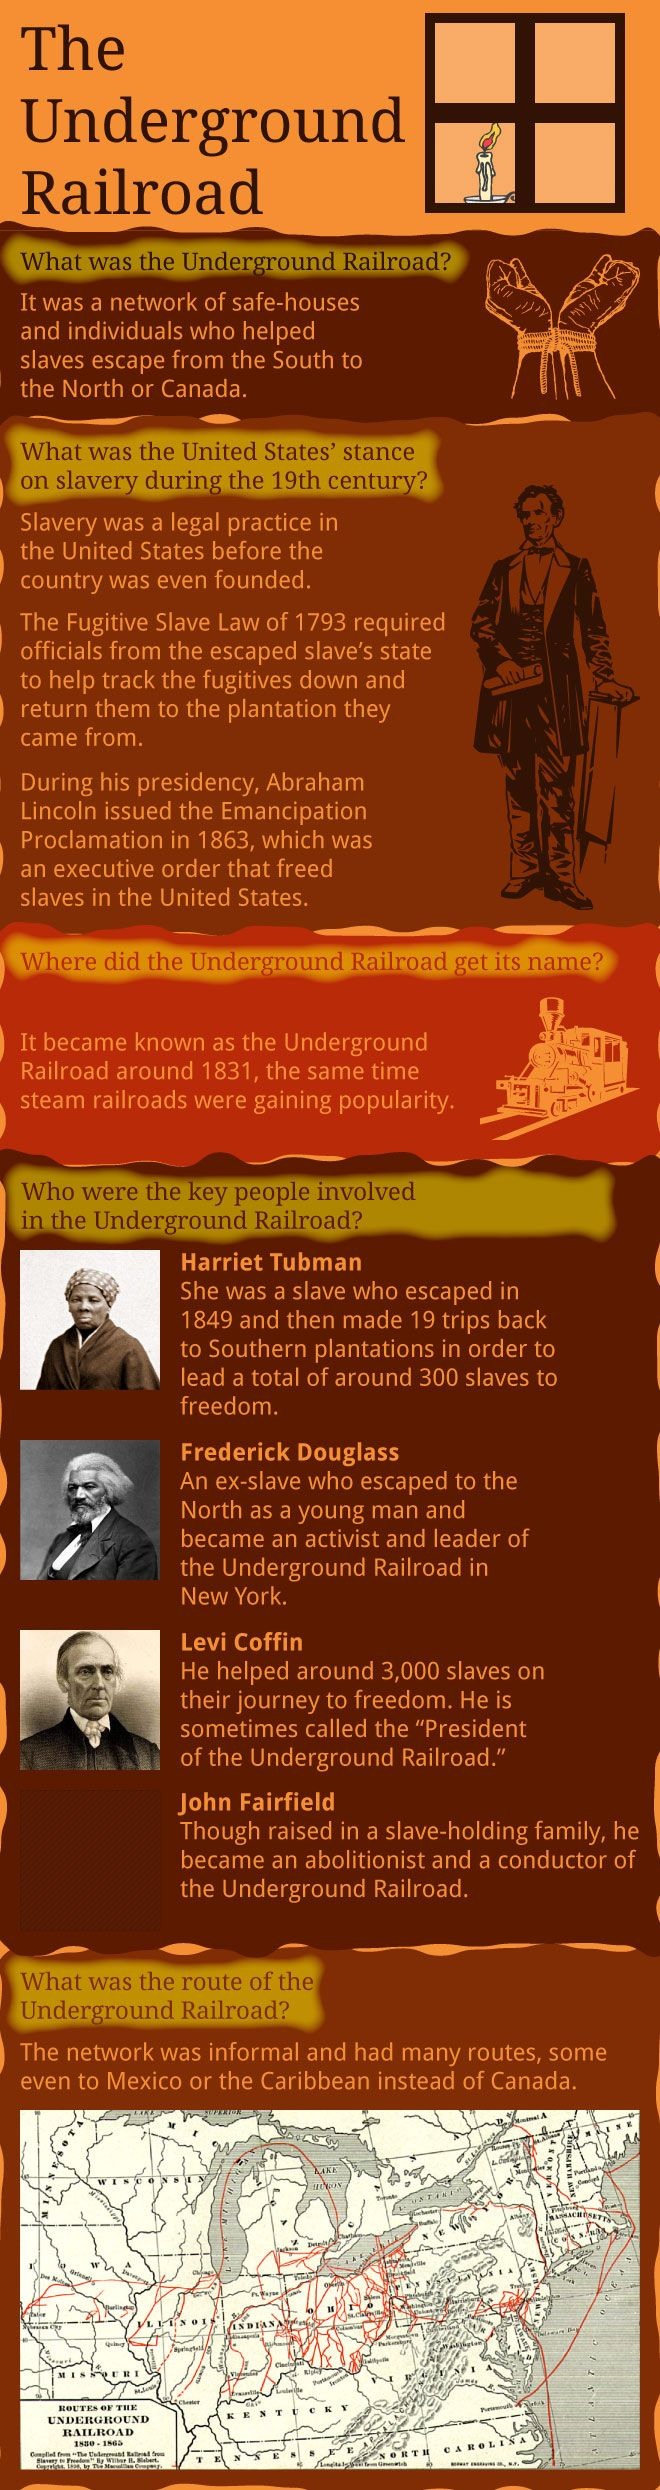 Find This Pin And More On The Underground Railroad